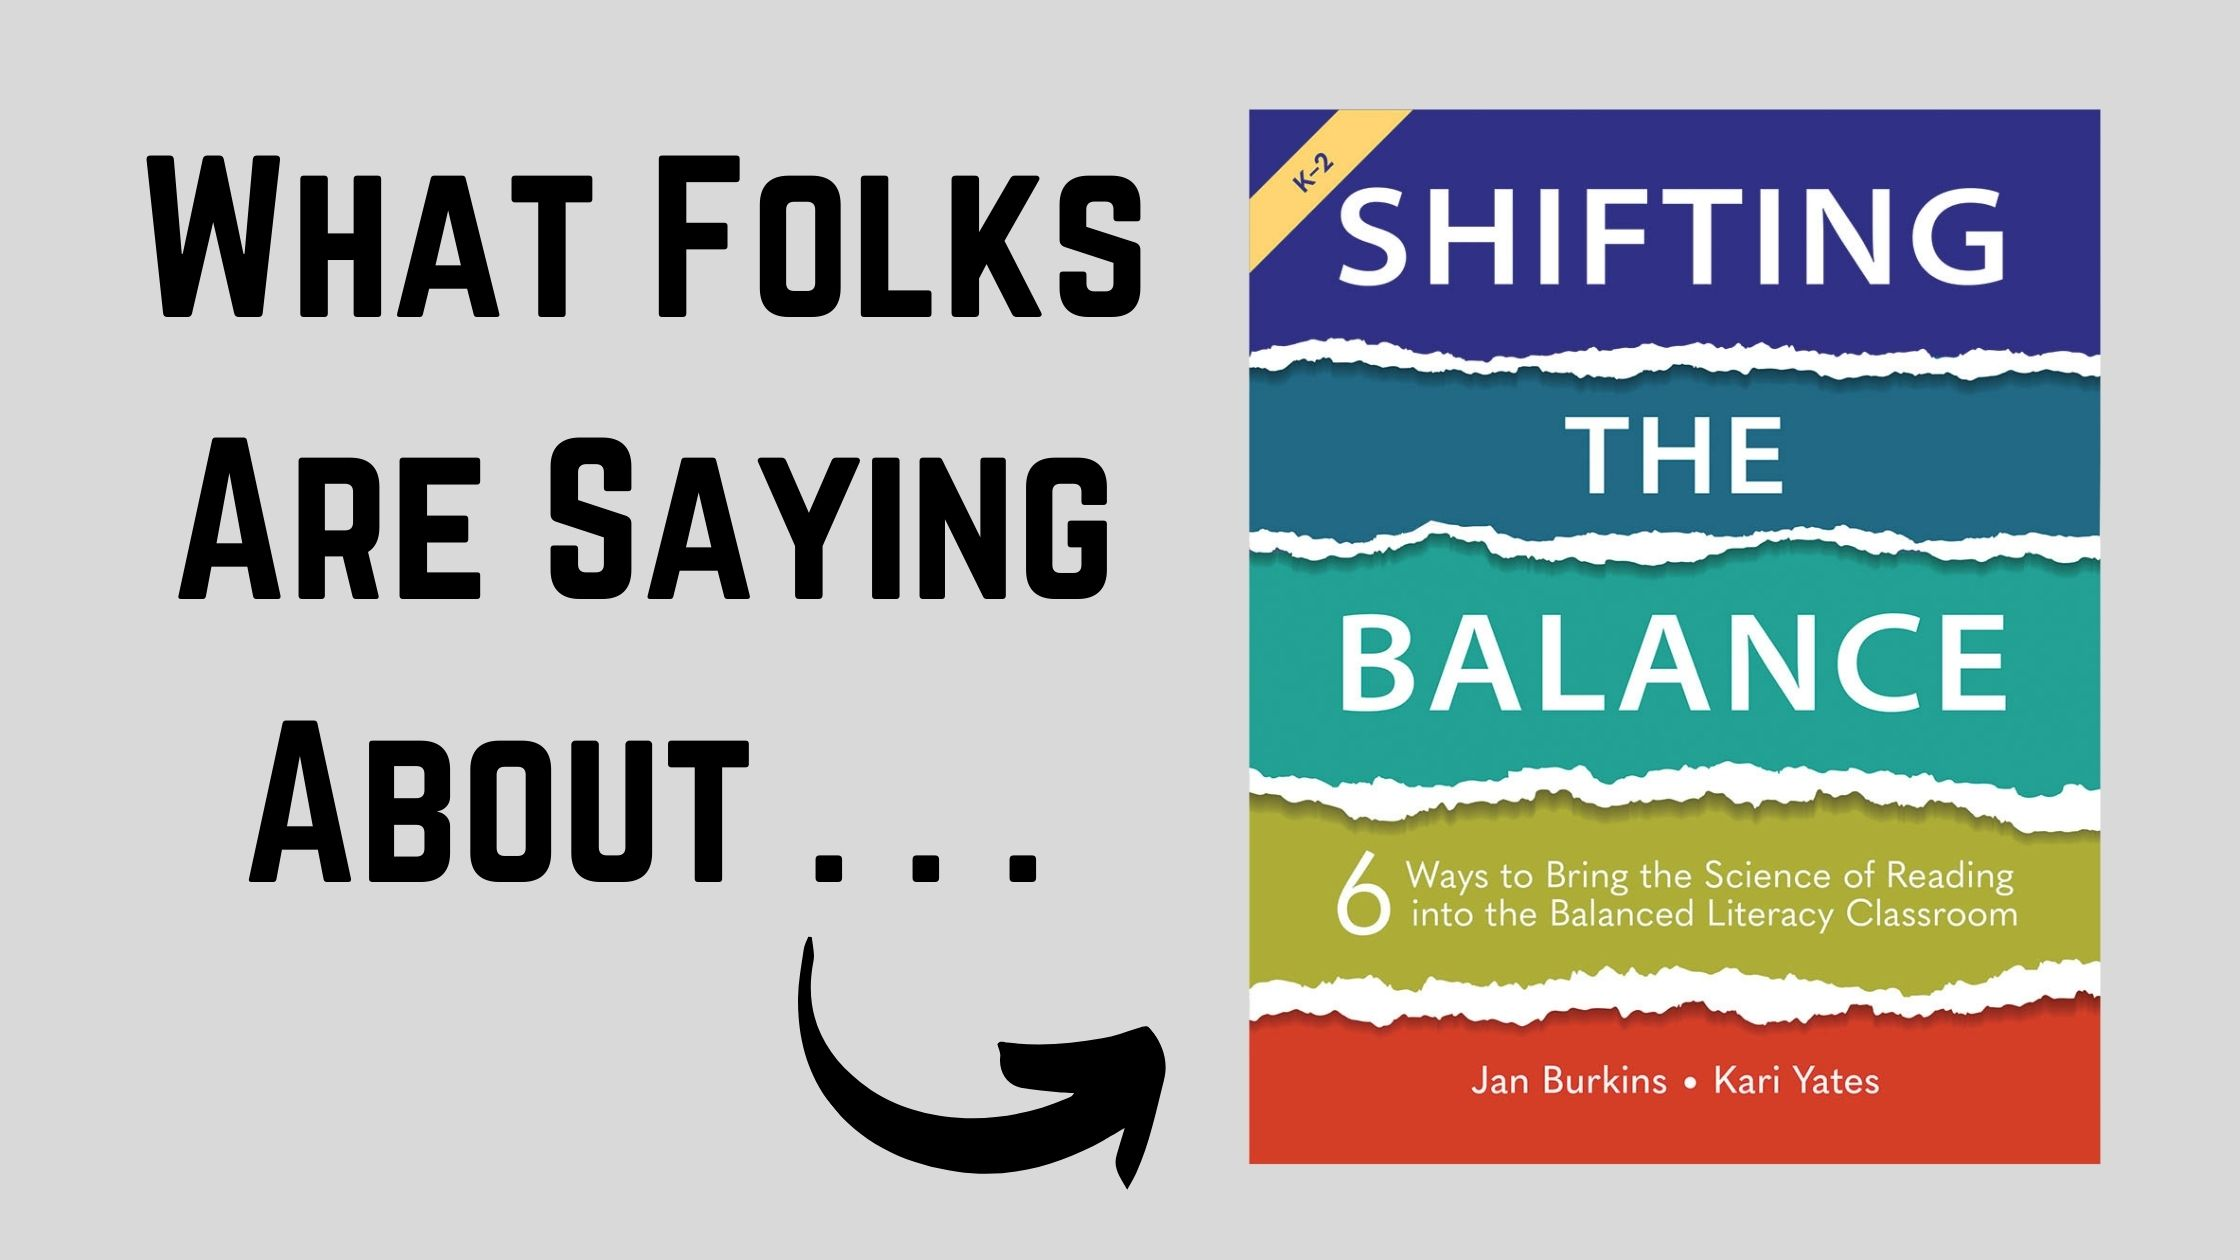 What Folks Are Saying About: Shifting the Balance